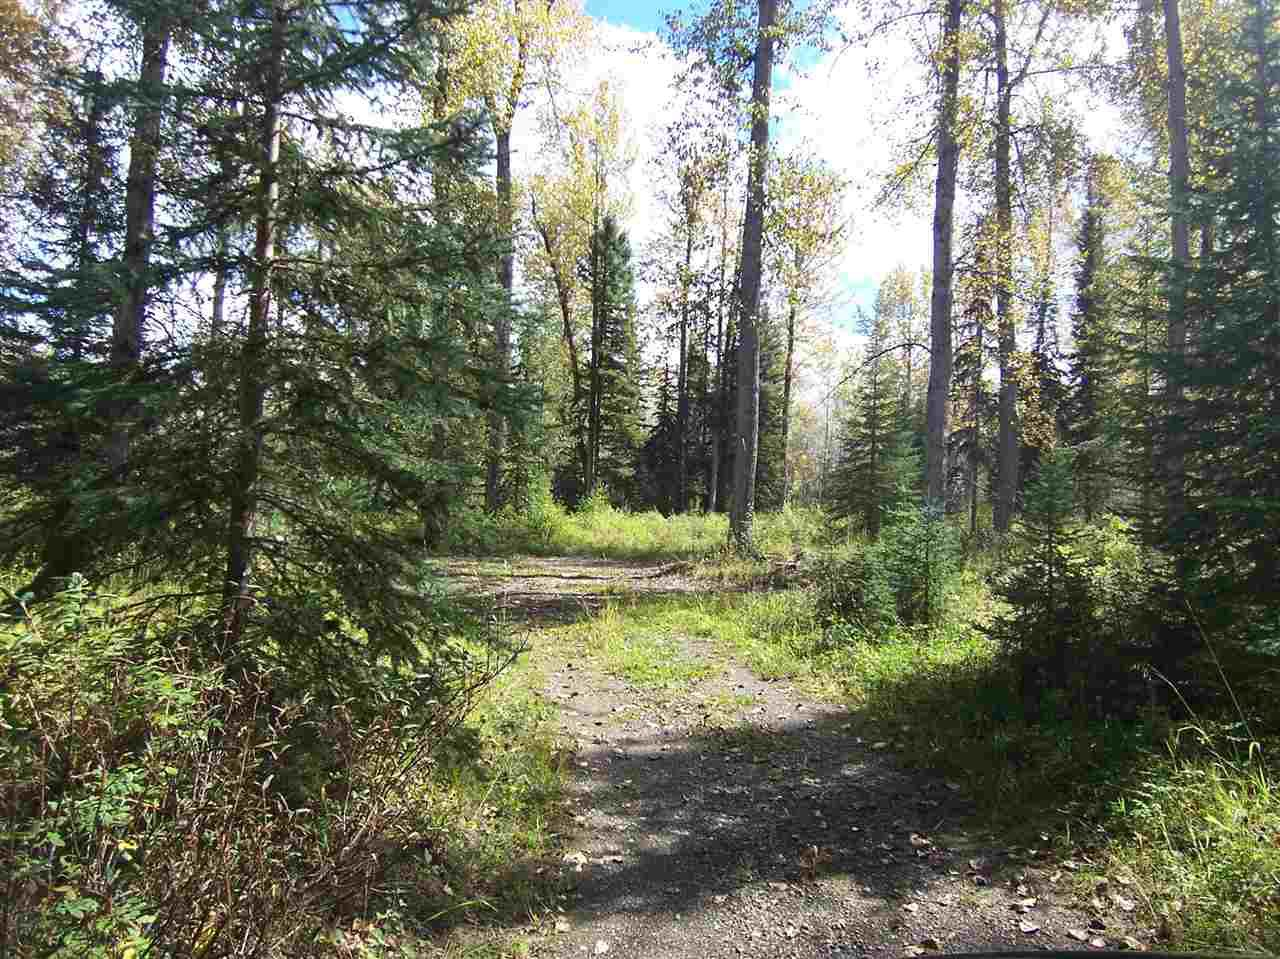 Photo 13: Photos: 4682 BARKERVILLE Highway in Quesnel: Quesnel - Rural North Land for sale (Quesnel (Zone 28))  : MLS®# R2105293